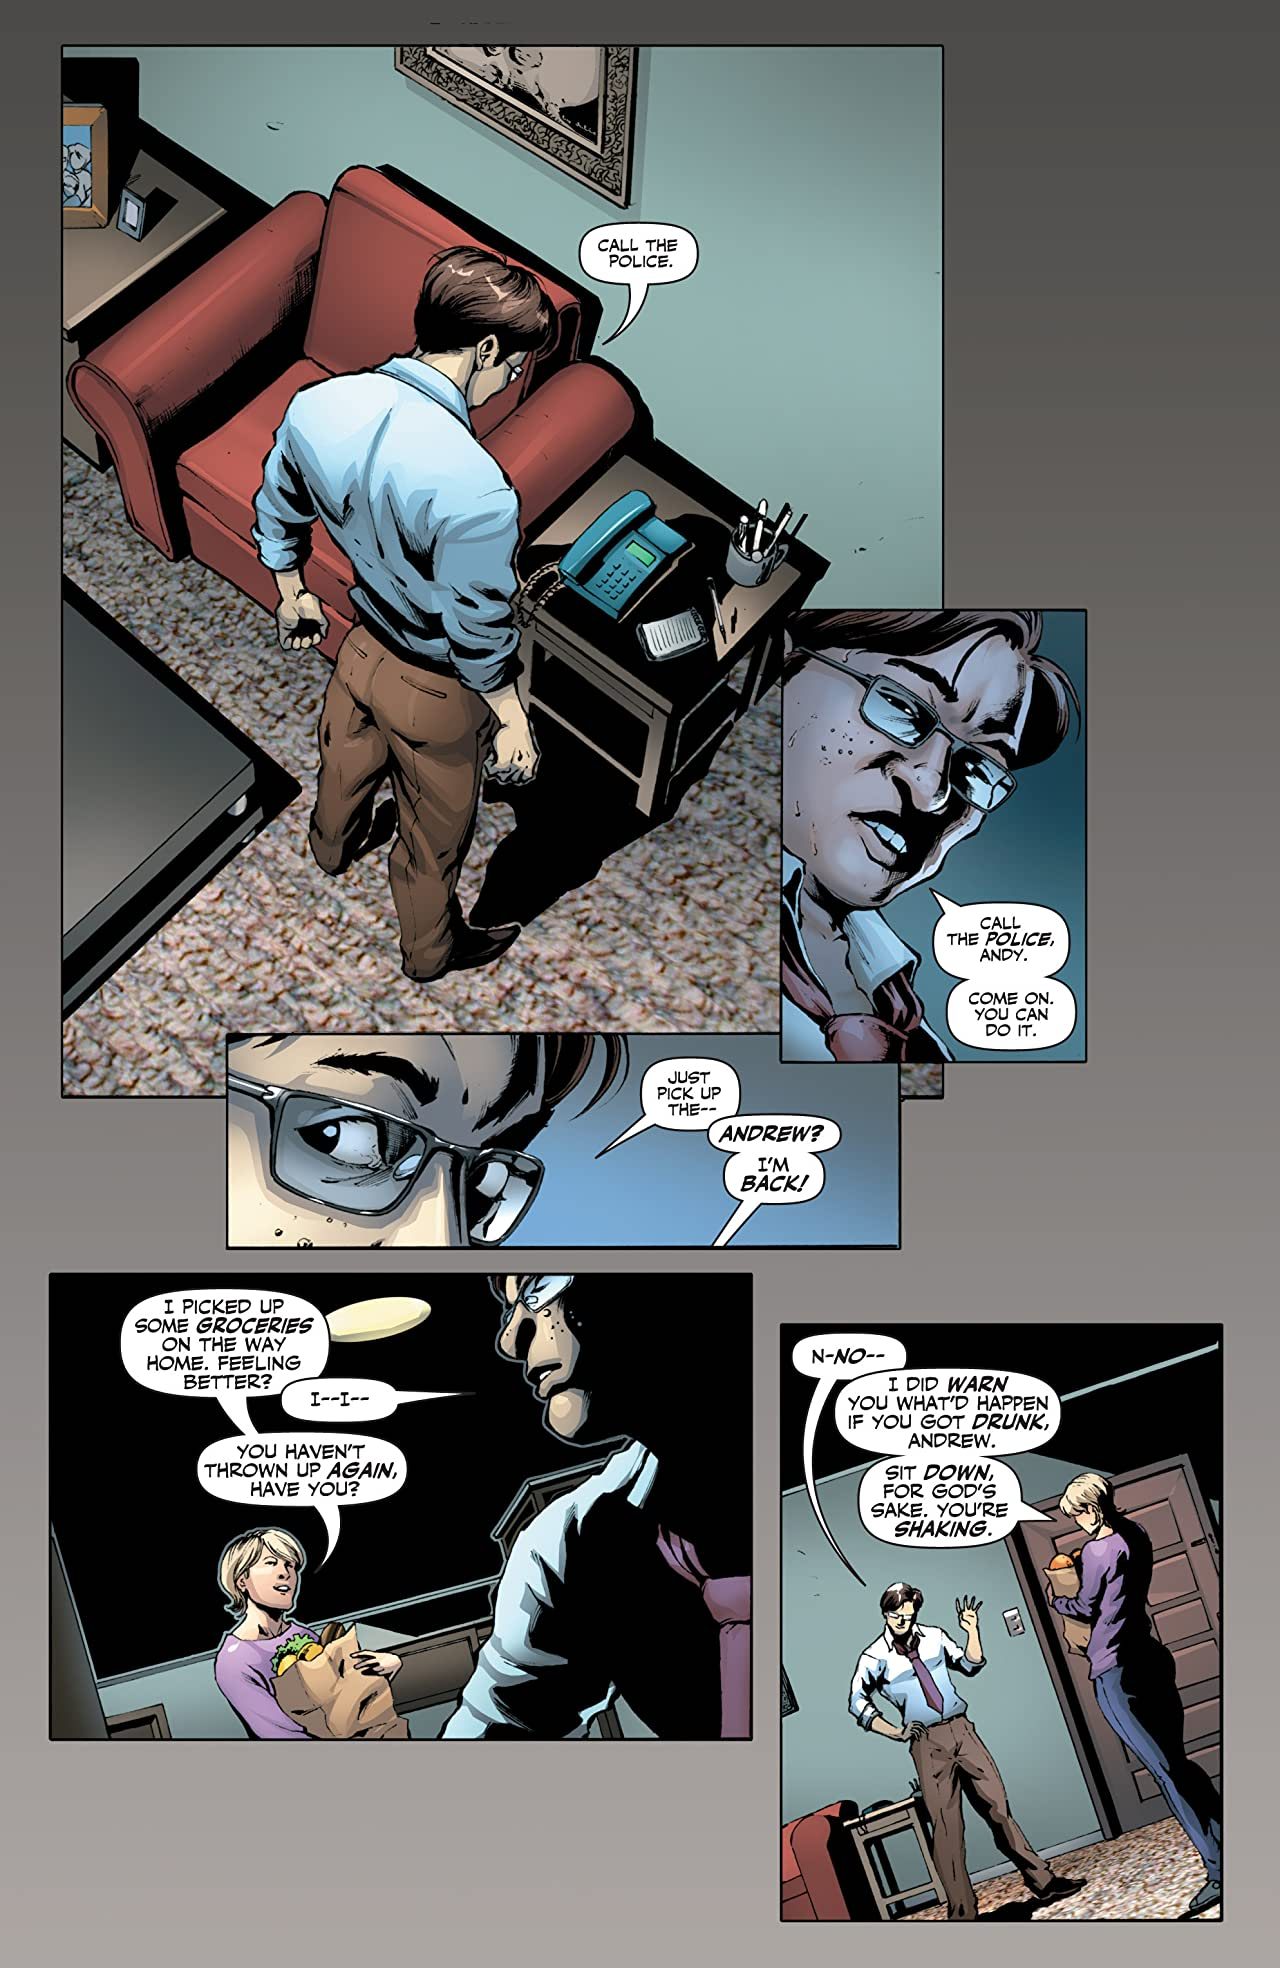 Garth Ennis' Jennifer Blood #16